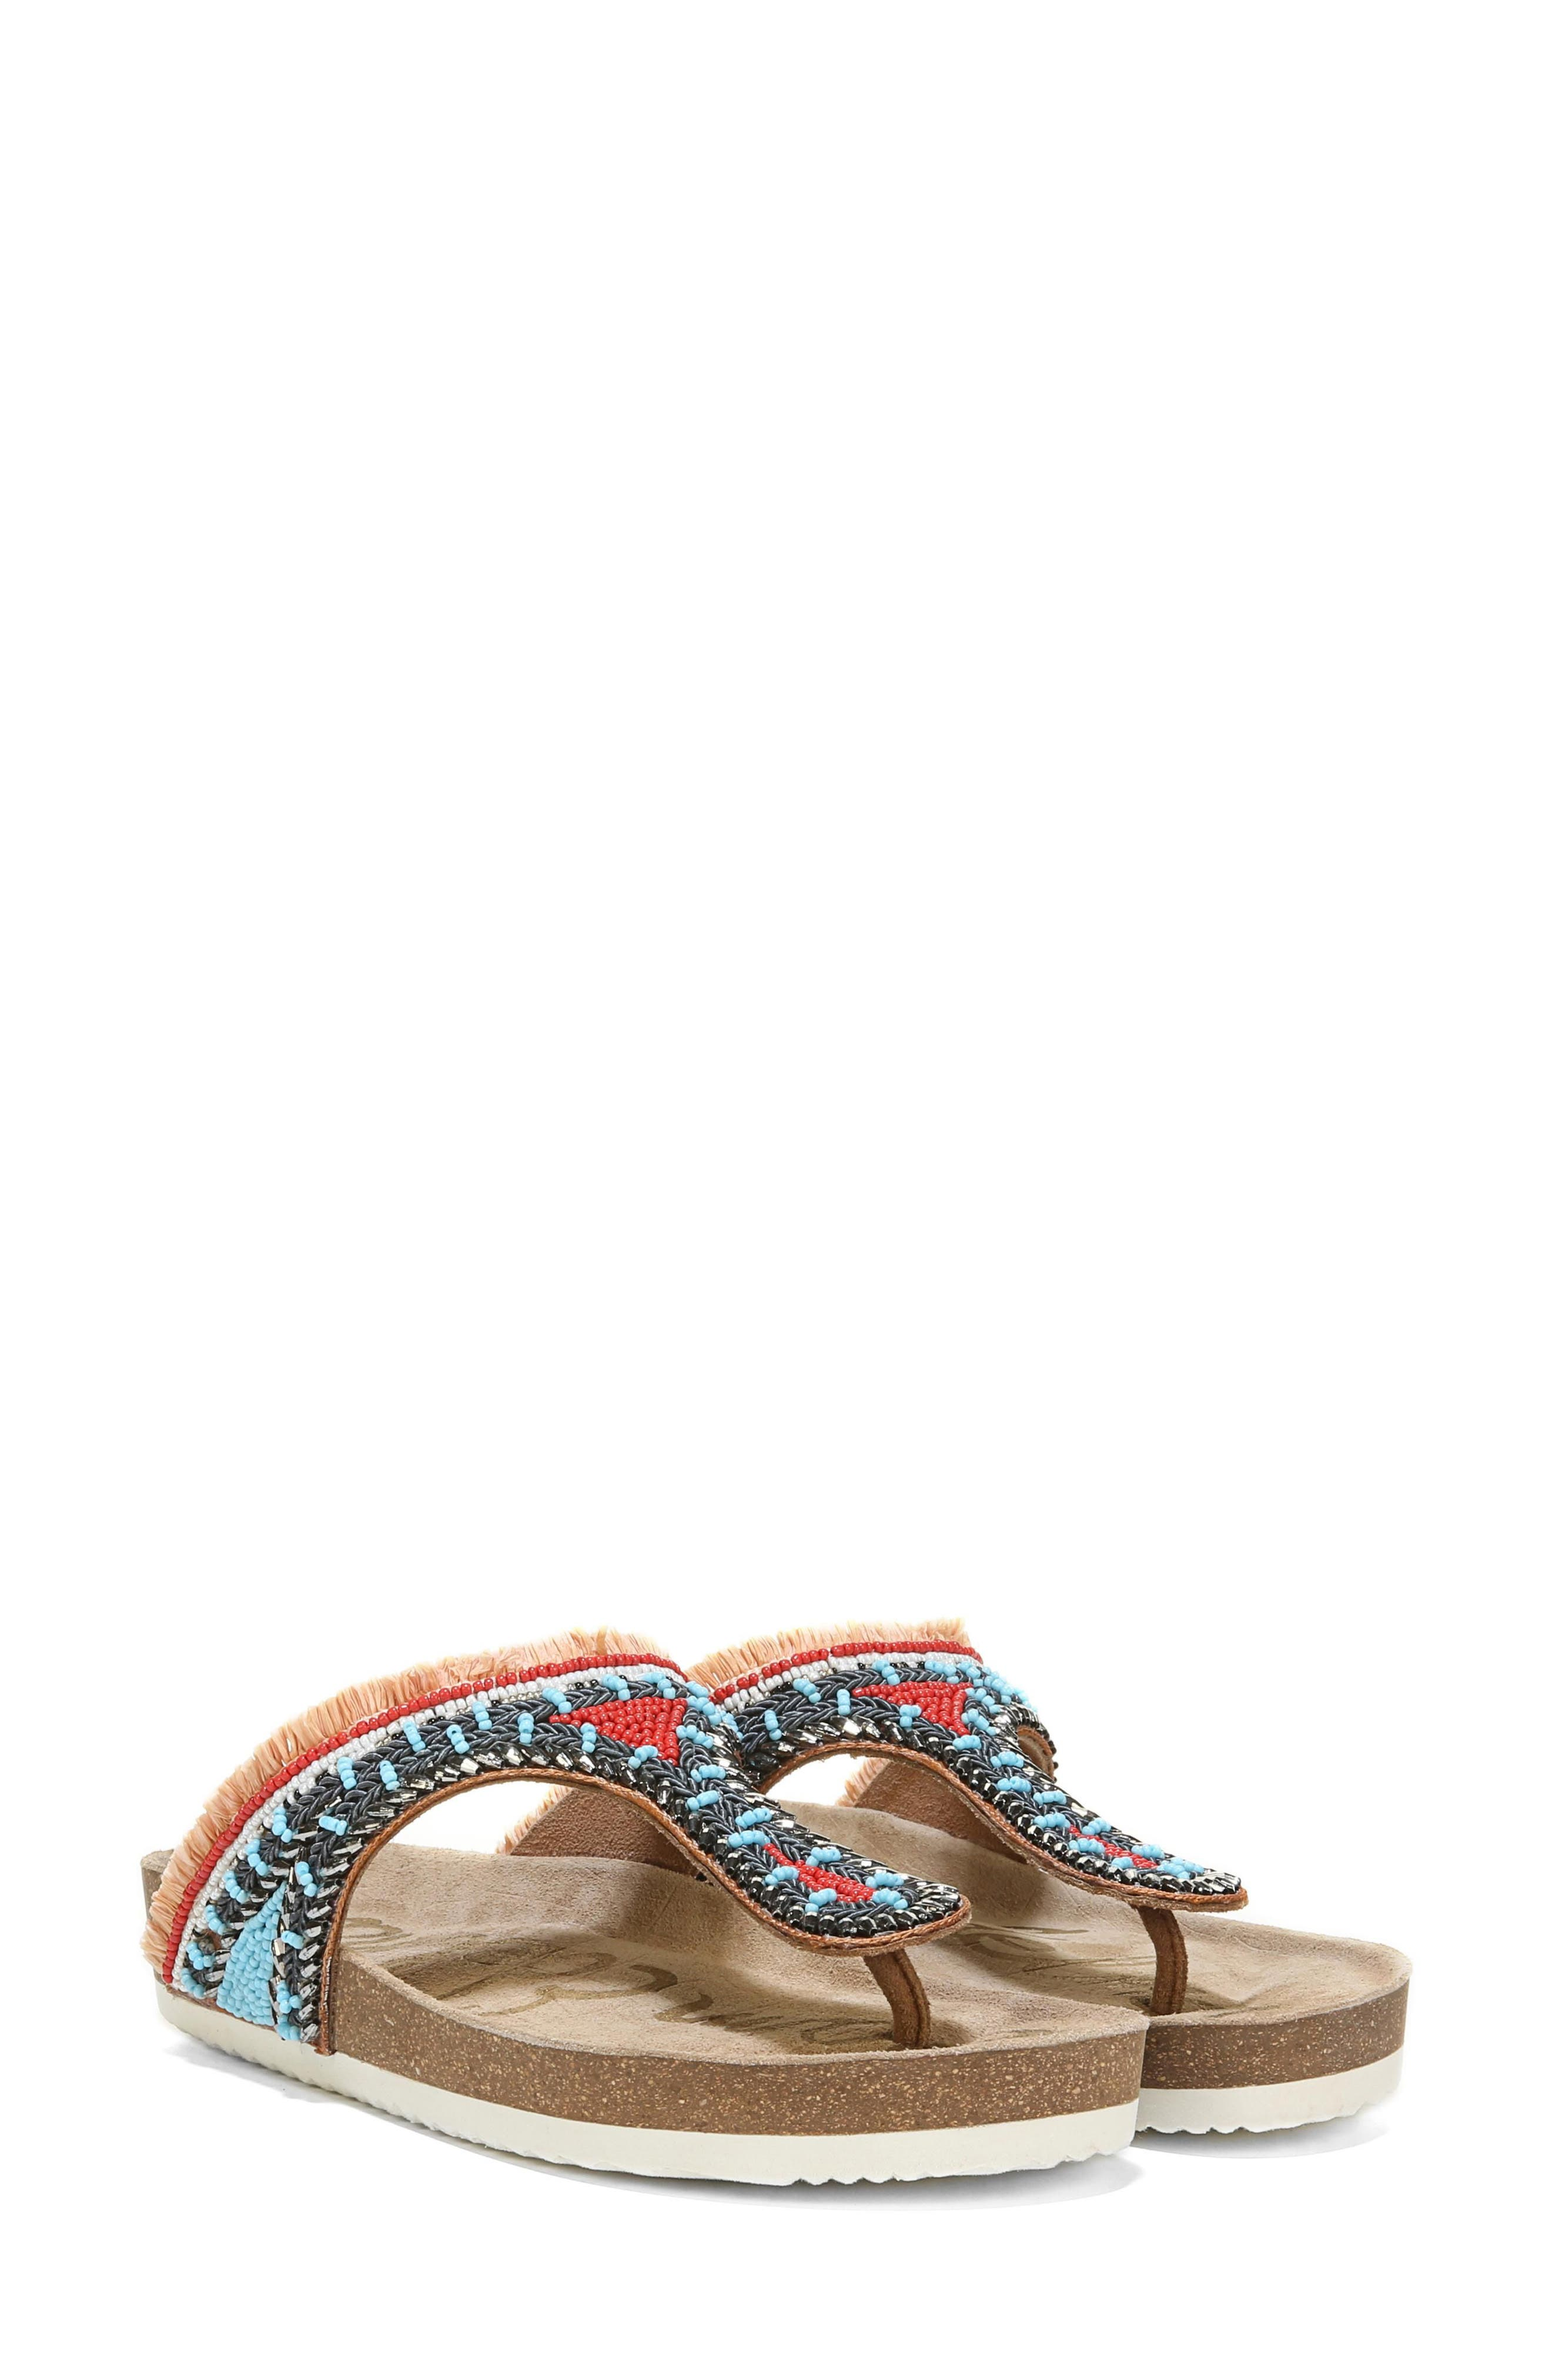 Olivie Beaded Flip Flop,                         Main,                         color, SADDLE/ BLUE MULTI